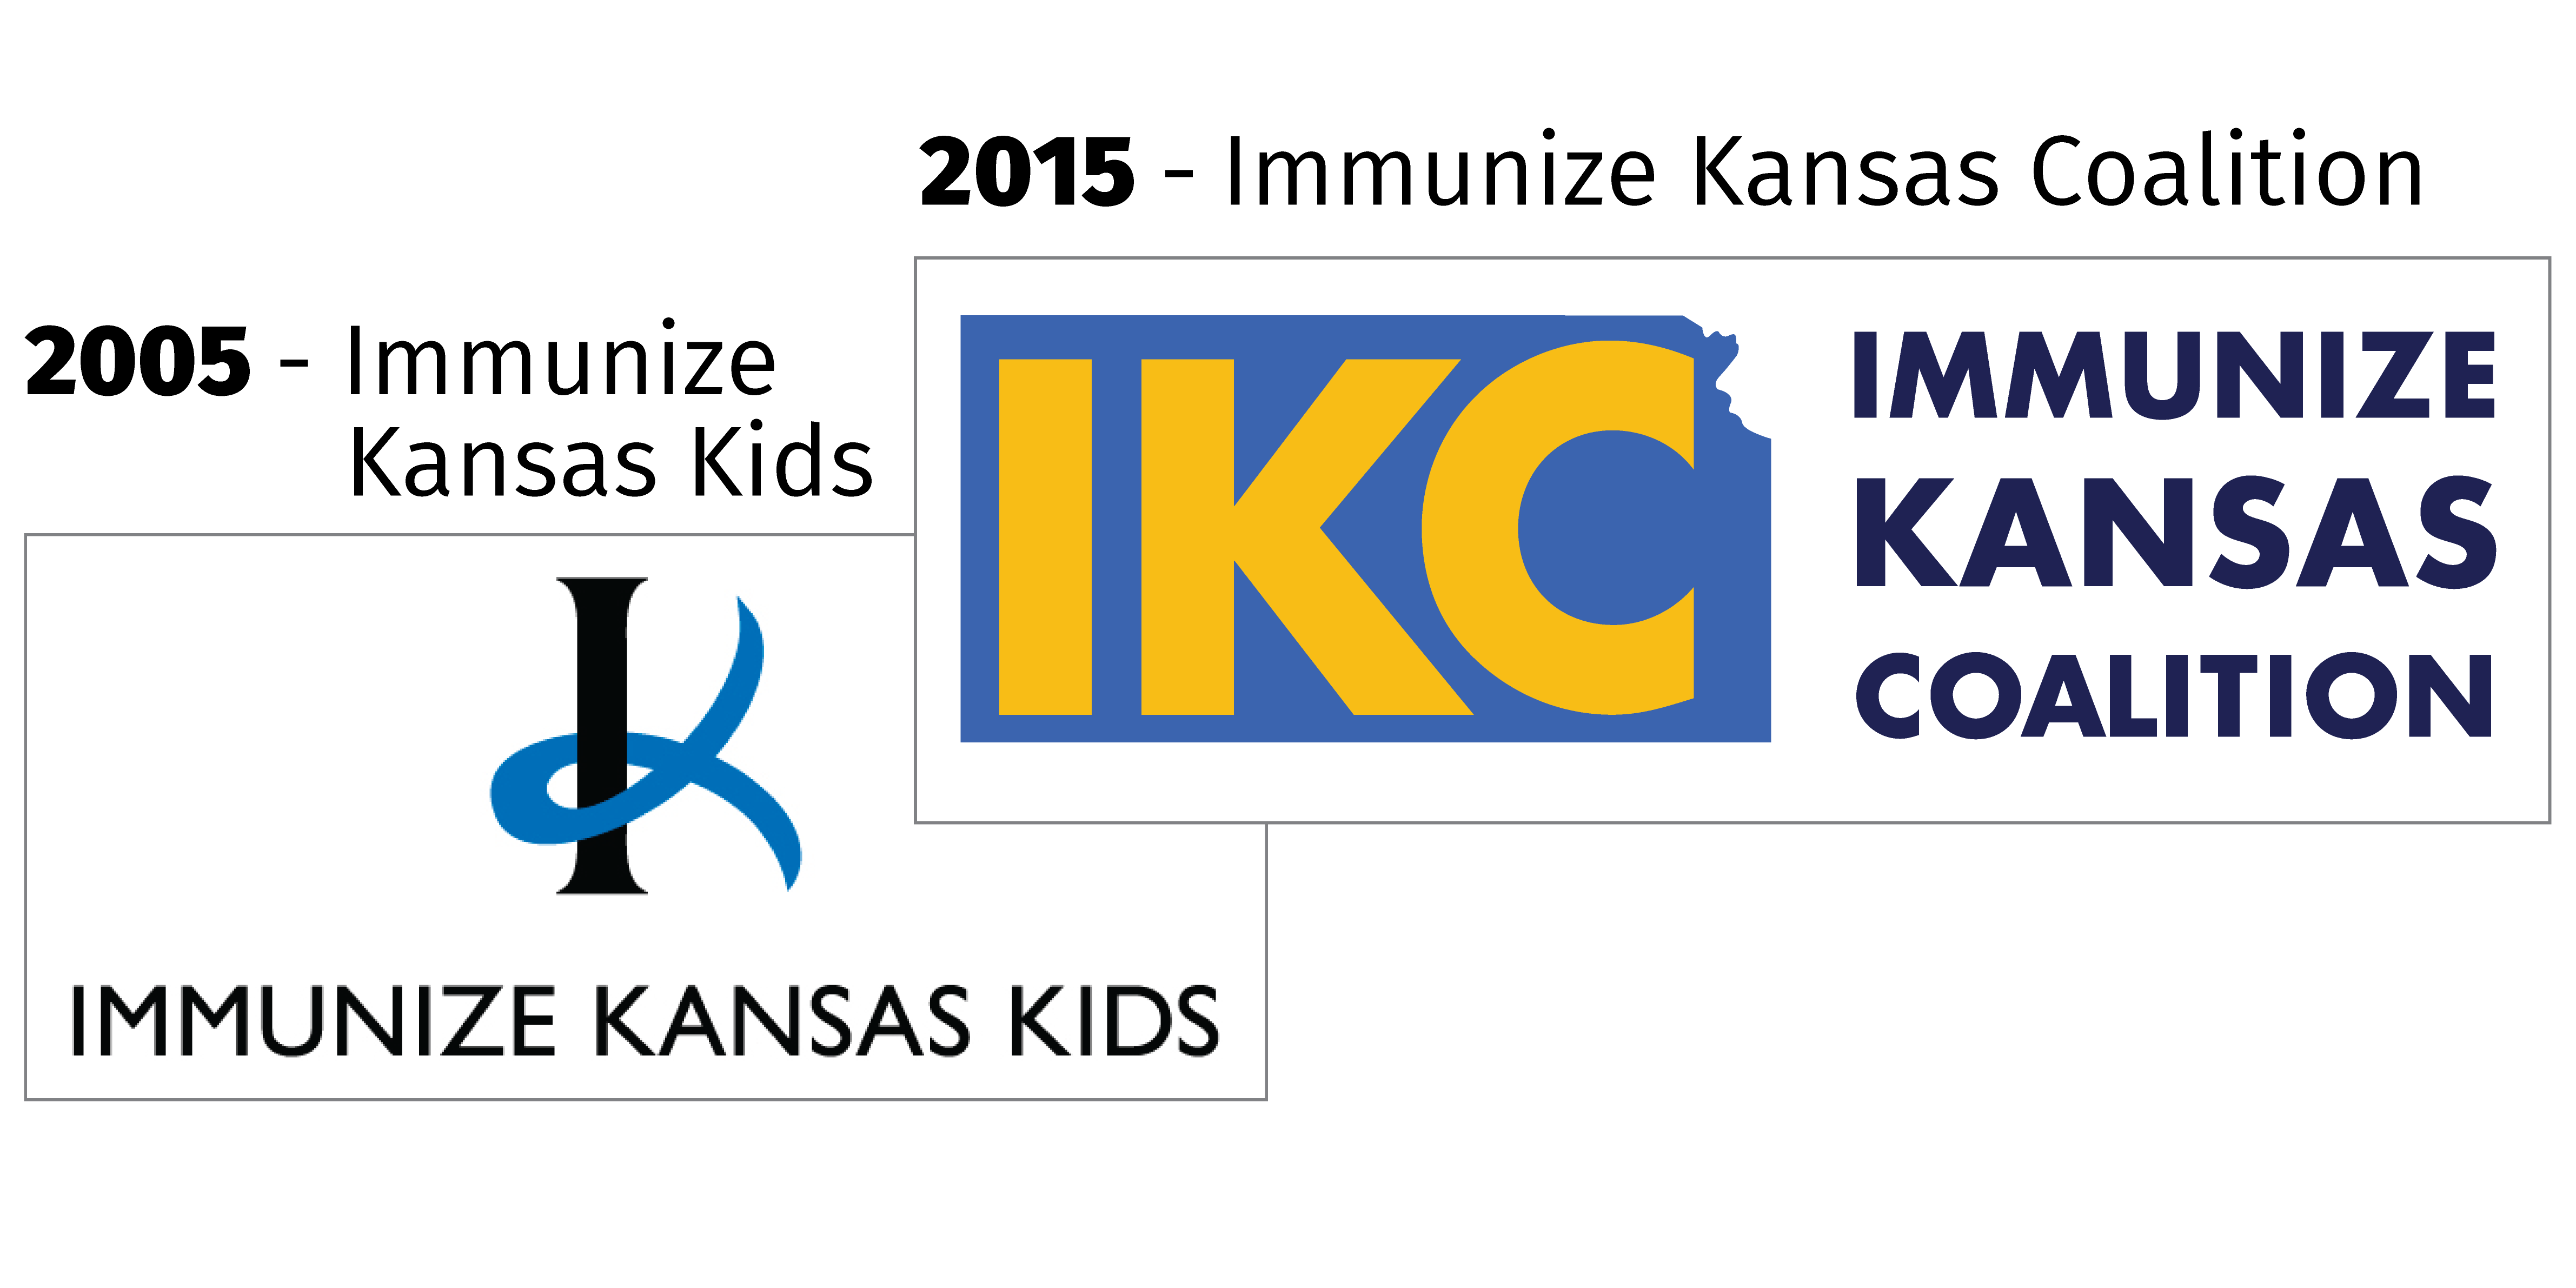 Immunize Kansas Kids logo and Immunize Kansas Coalition logo